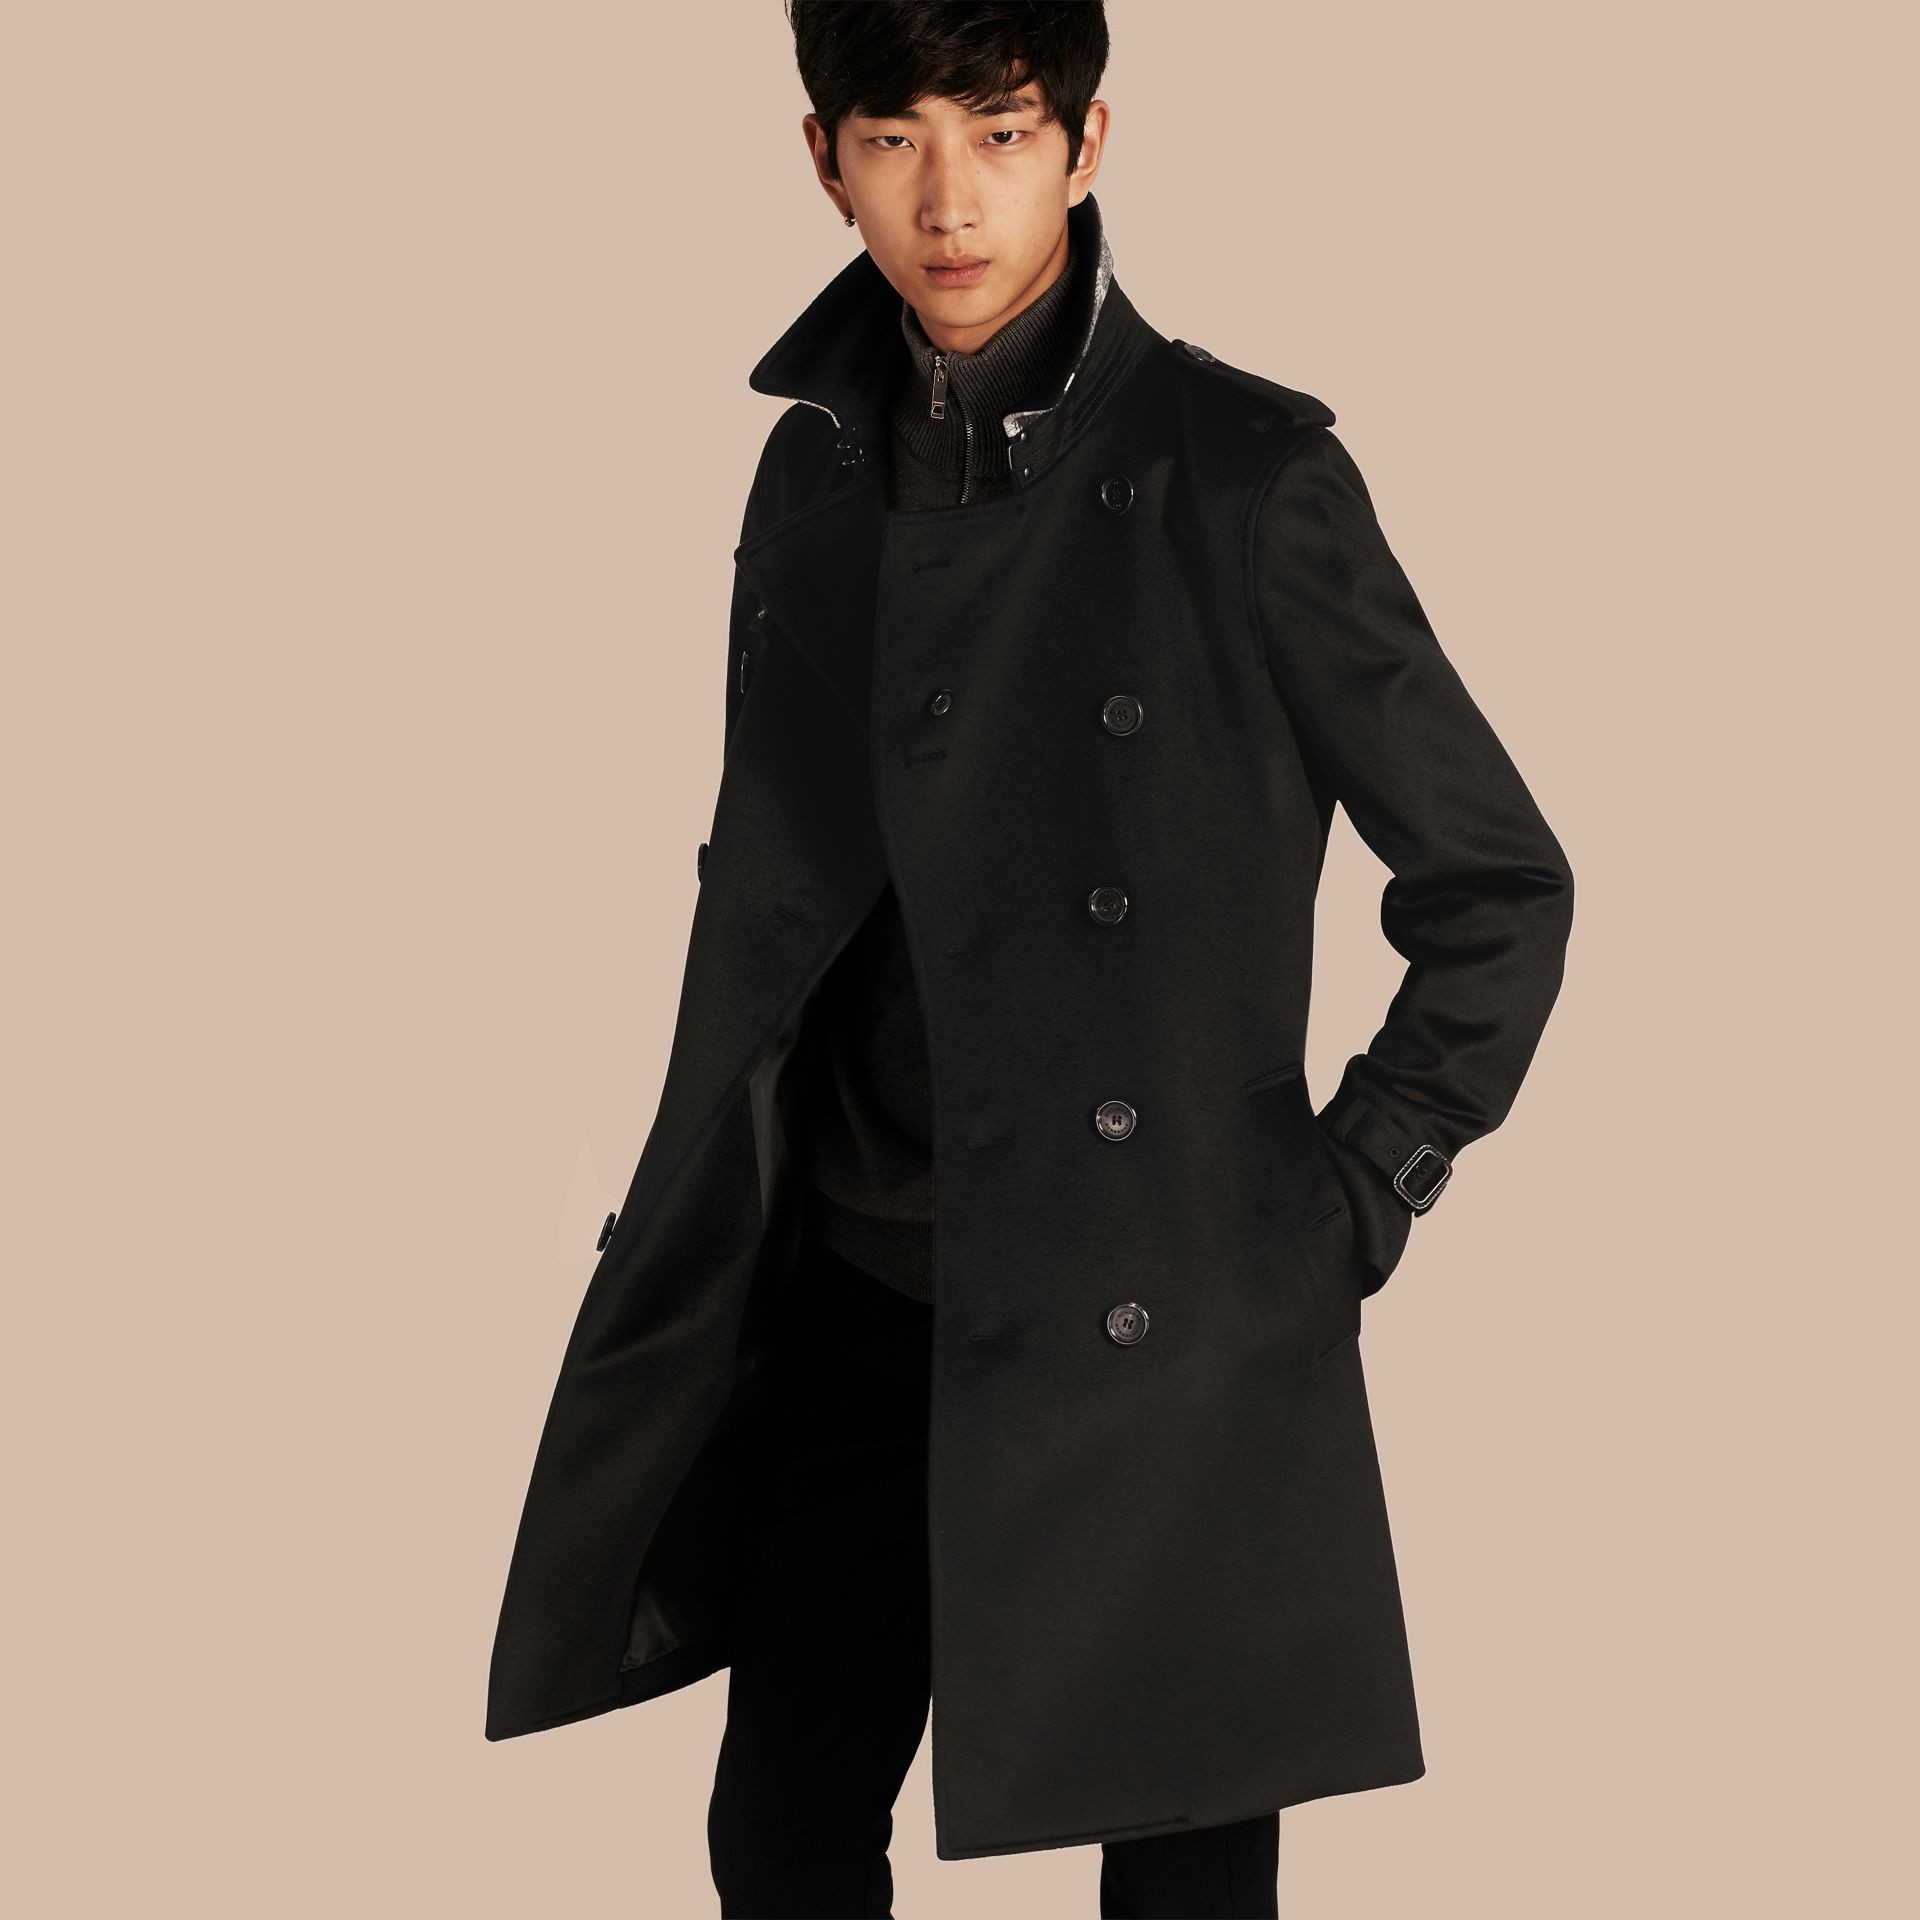 Cashmere Trench Coat in Black - Men | Burberry Australia - gallery image 1